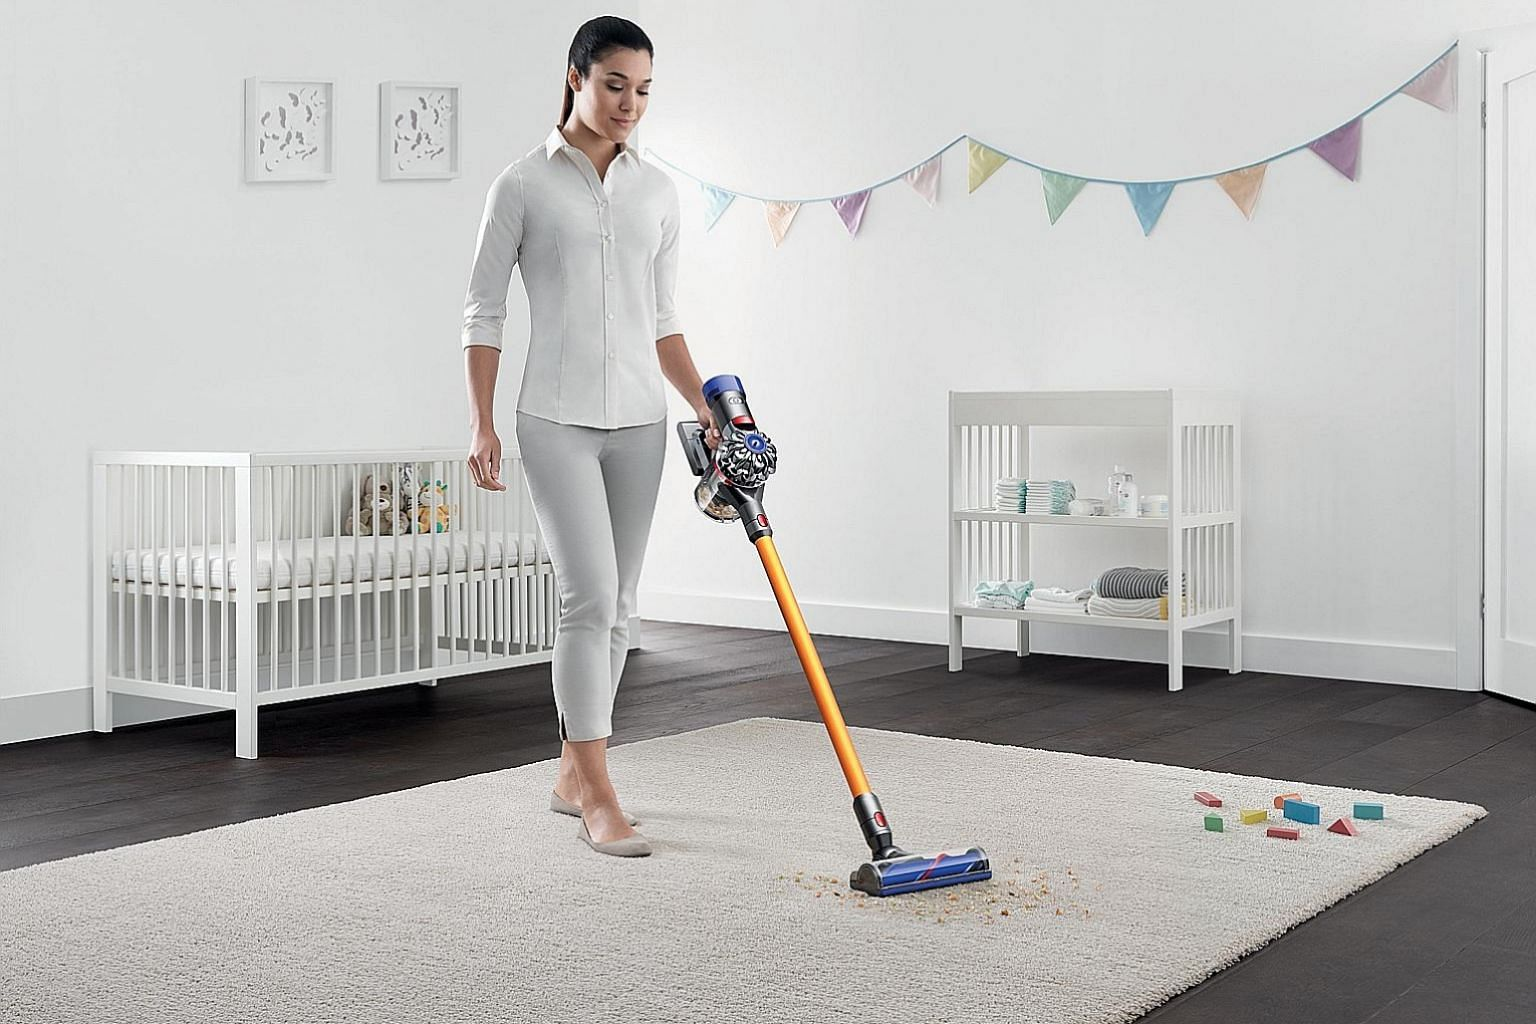 The V8 Absolute Plus' weight is centred on the main motor unit, so it is easy to manoeuvre regardless of the cleaning attachments placed on it. The cordless V8 can also be used as a handheld vacuum cleaner for your car.